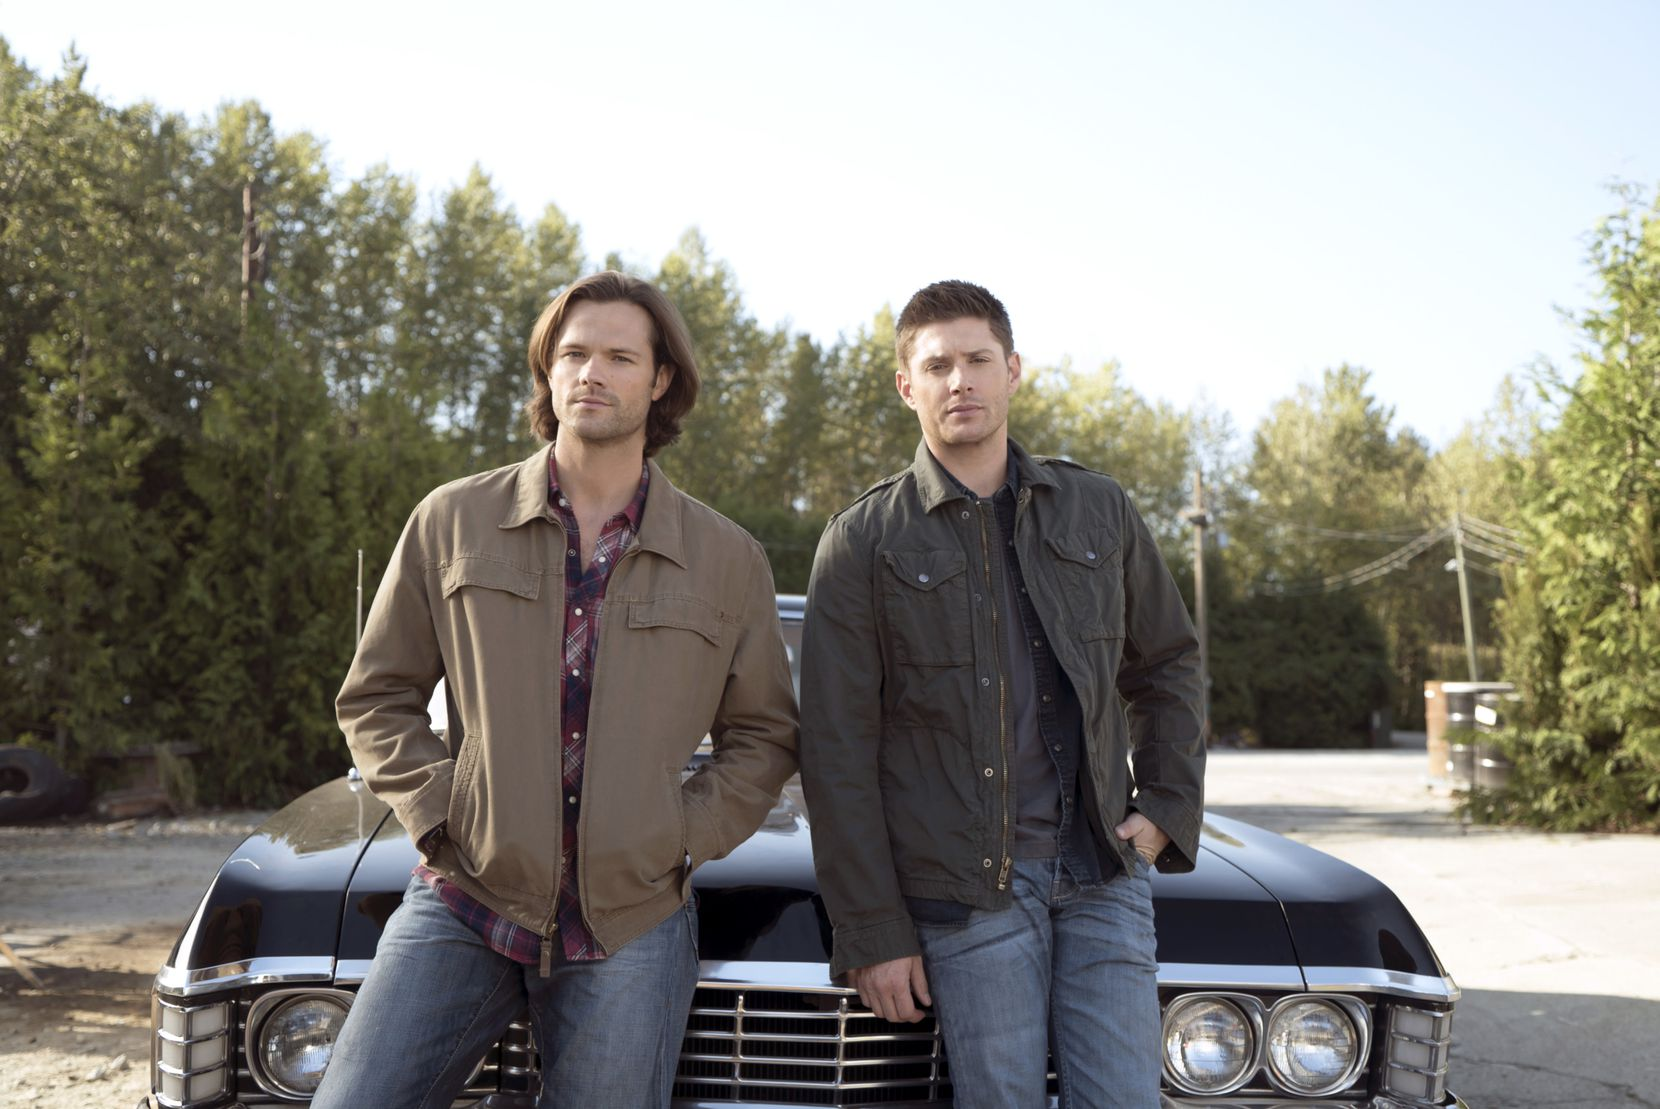 Jared Padalecki, left, and Jensen Ackles star in the CW's 'Supernatural' and were previously scheduled to attend South by Southwest 2020.